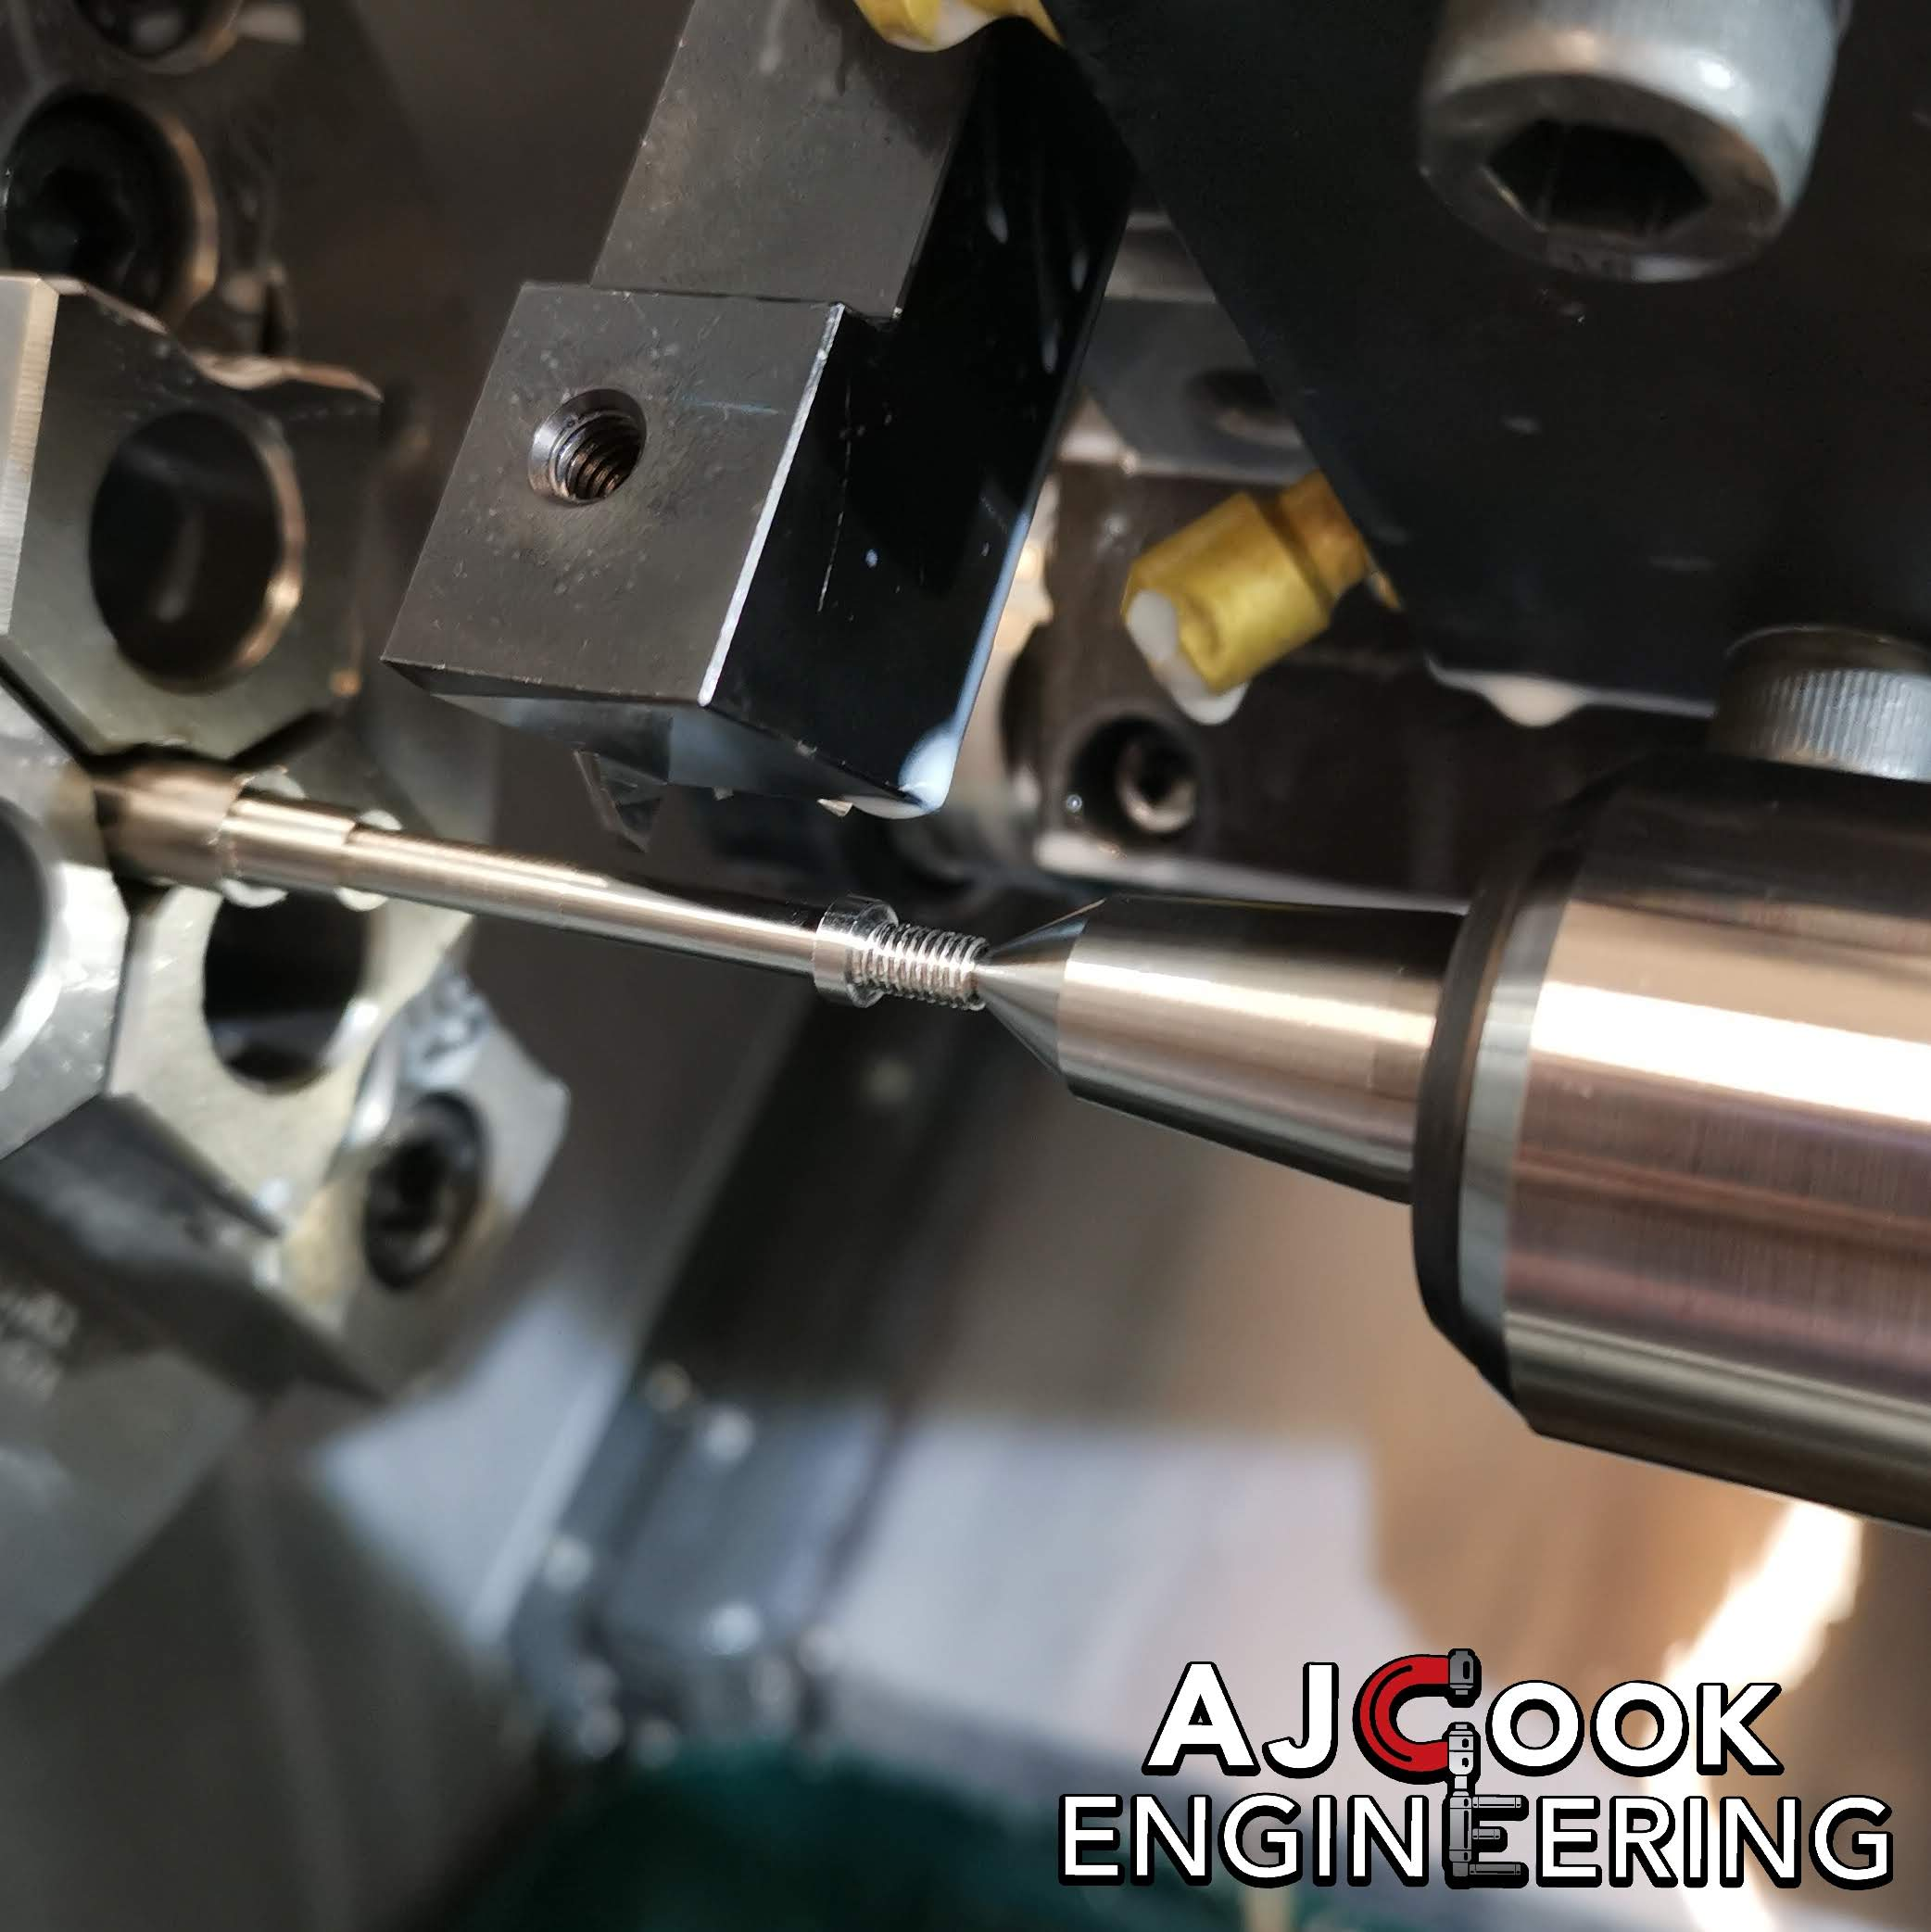 CNC Manufacturing A J Cook Engineering Limited Cambridgeshire CNC Manufacturing